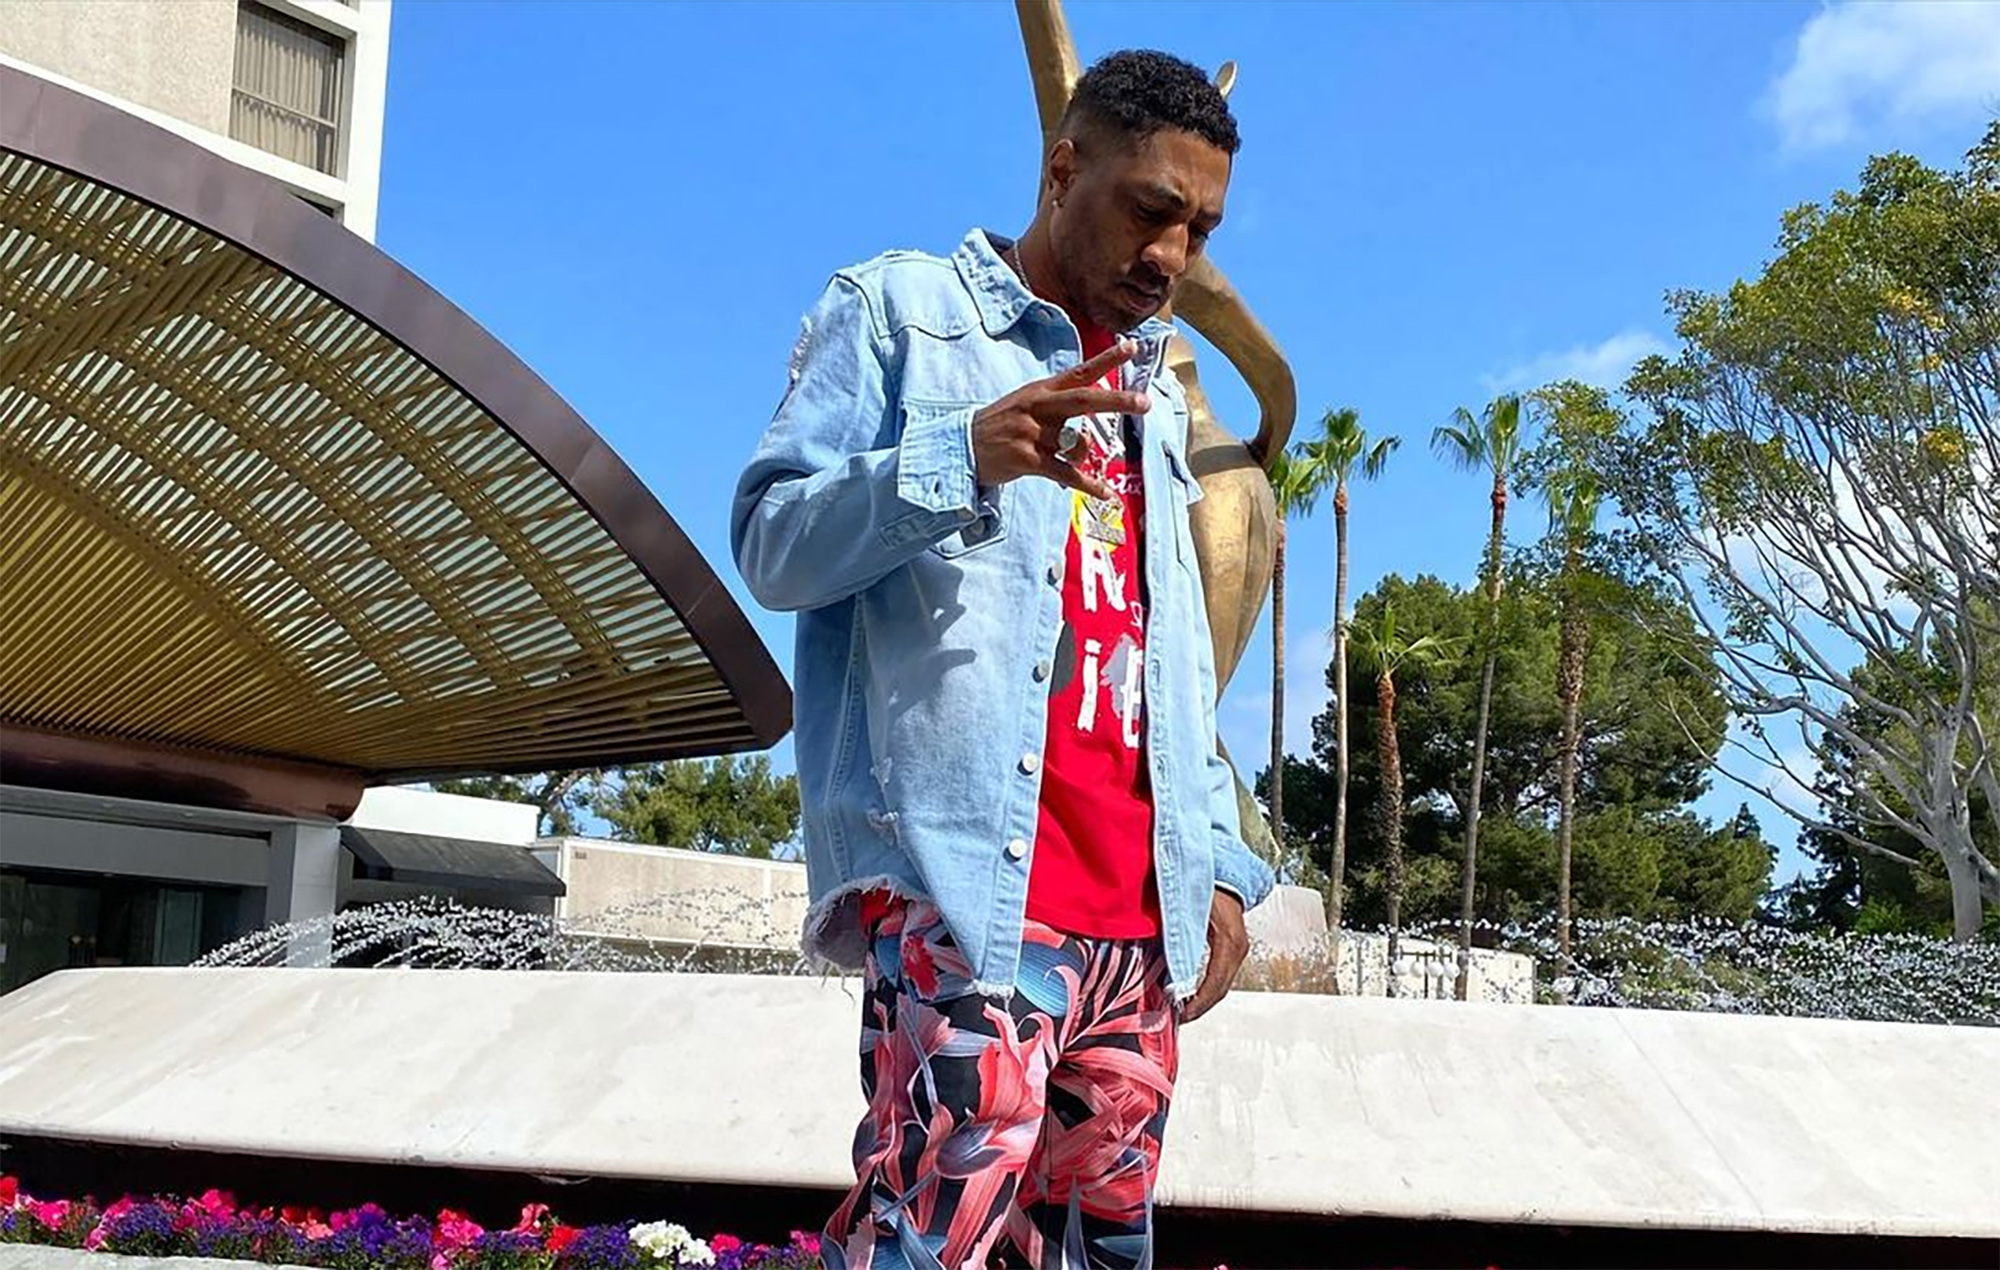 Rapper Gonzoe, associate of Ice Cube and Tupac, shot and killed